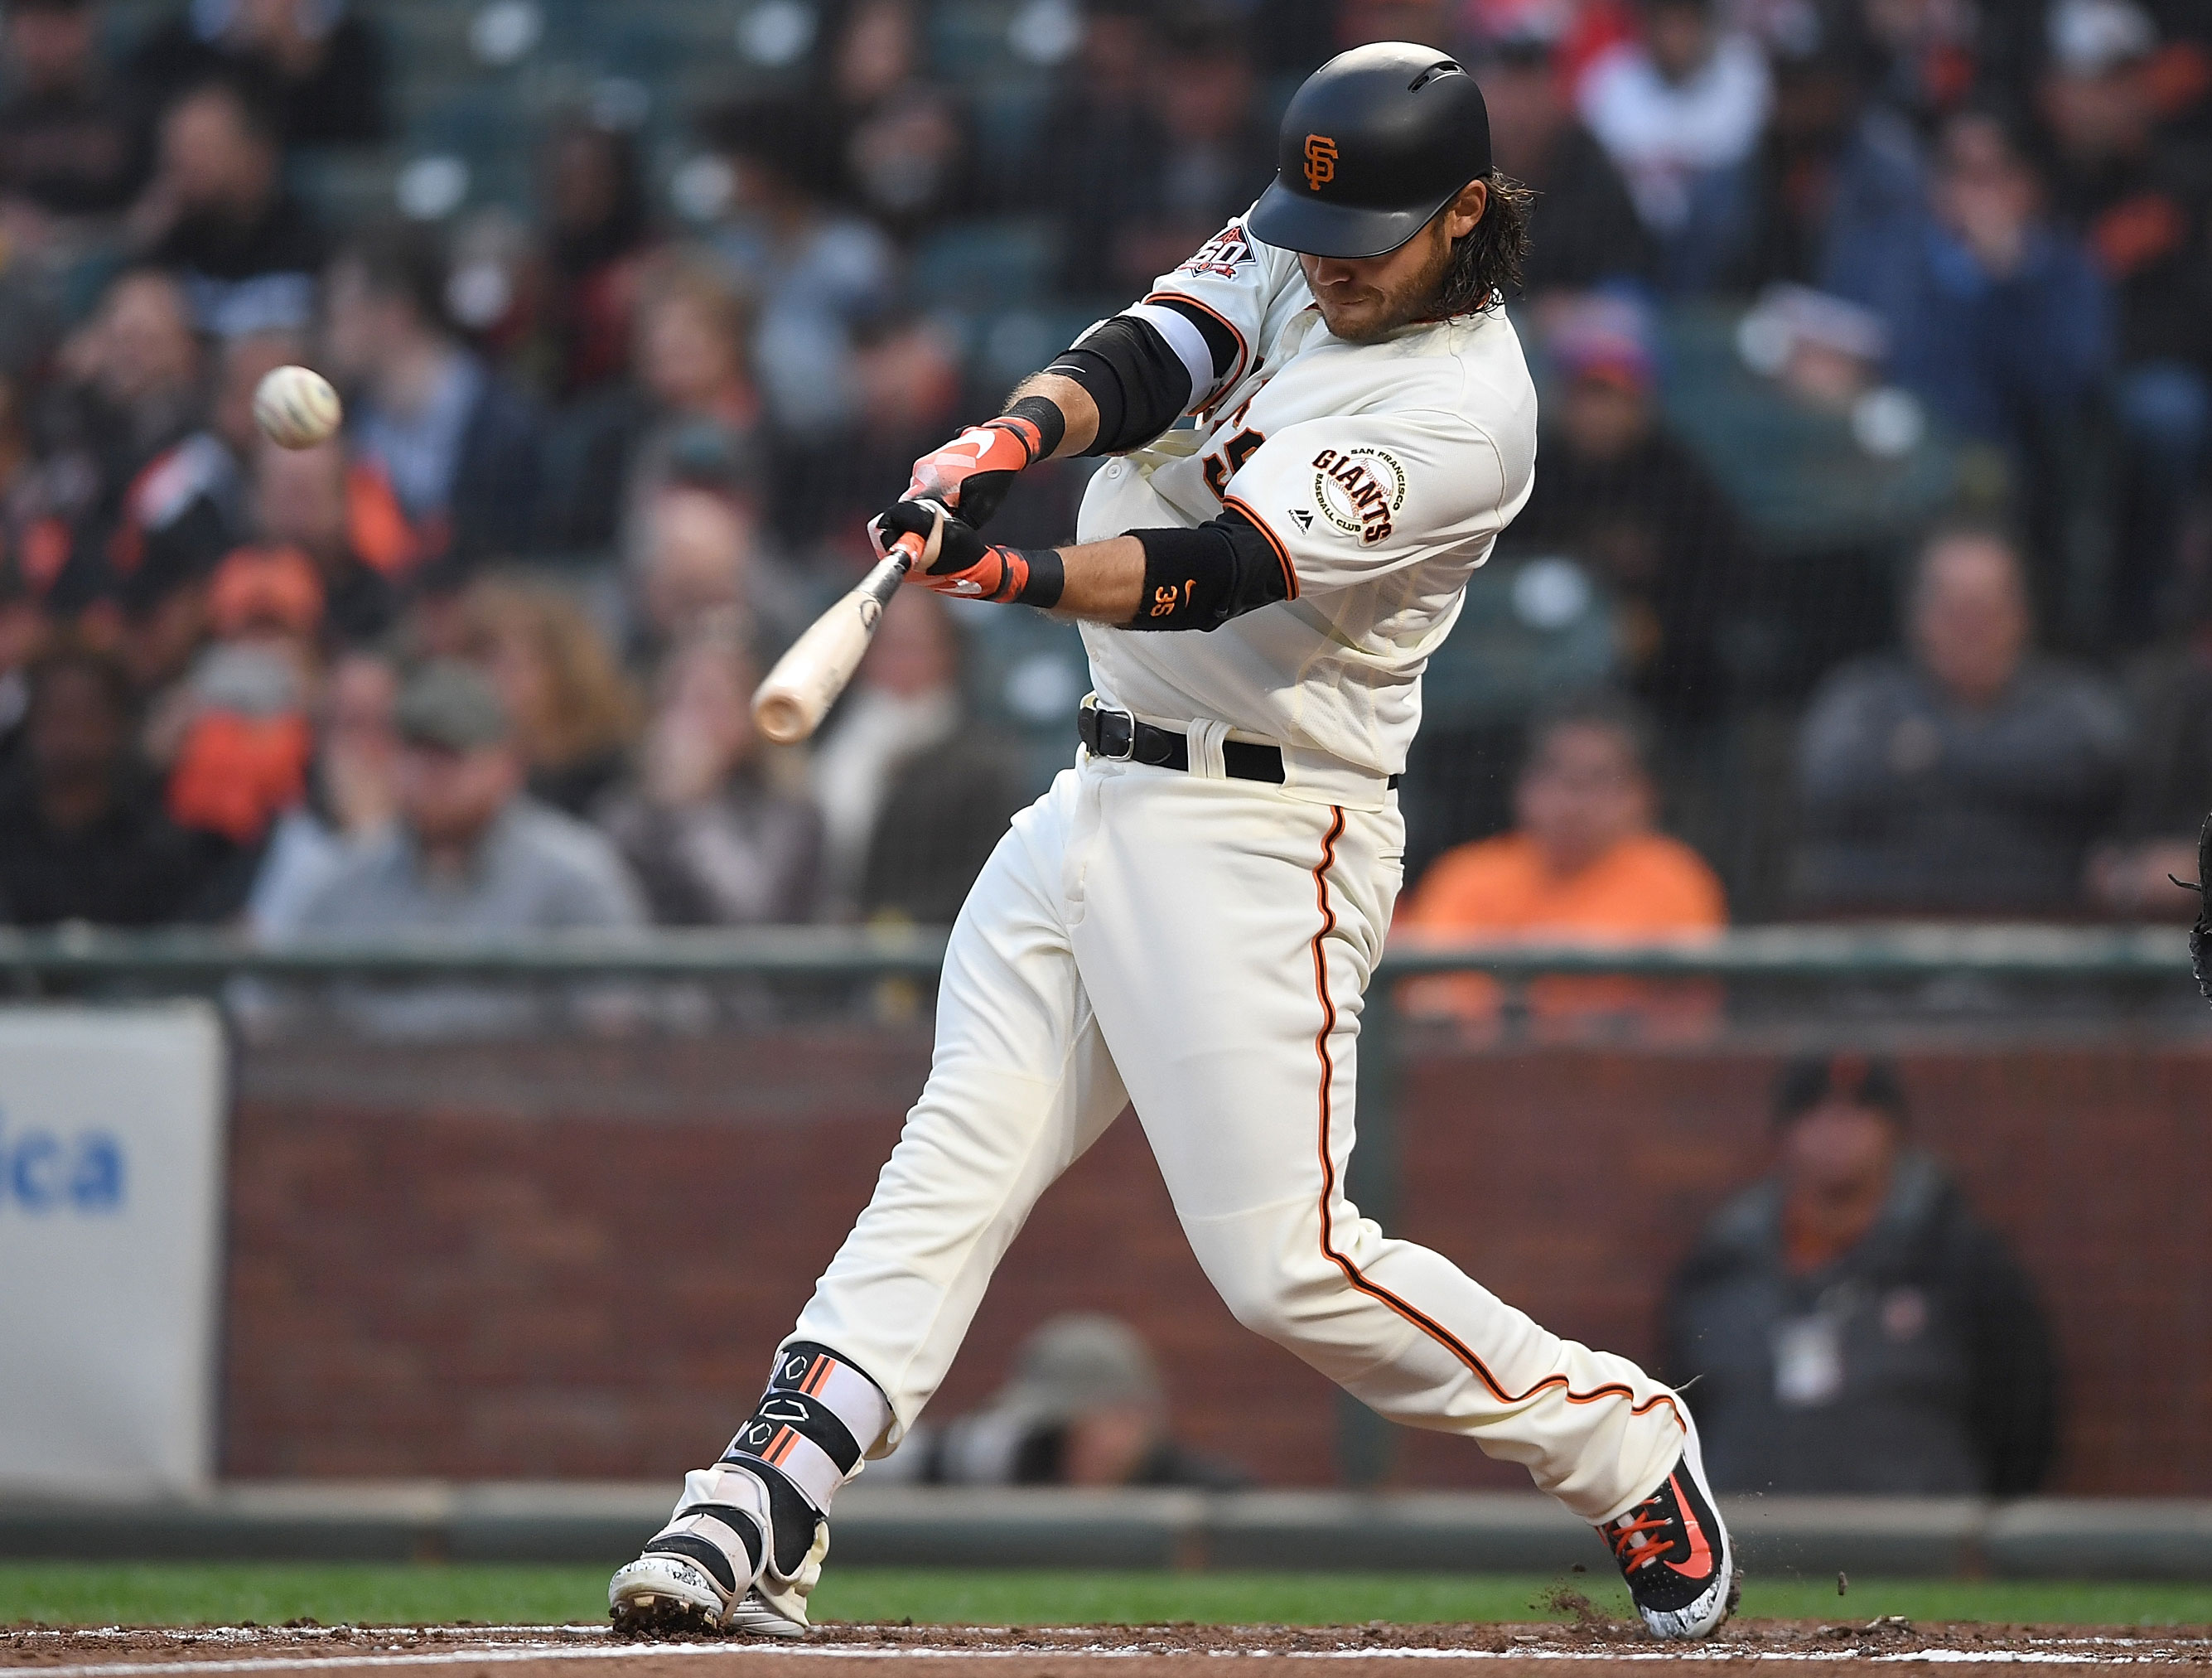 MLB: Buy, hold or sell?